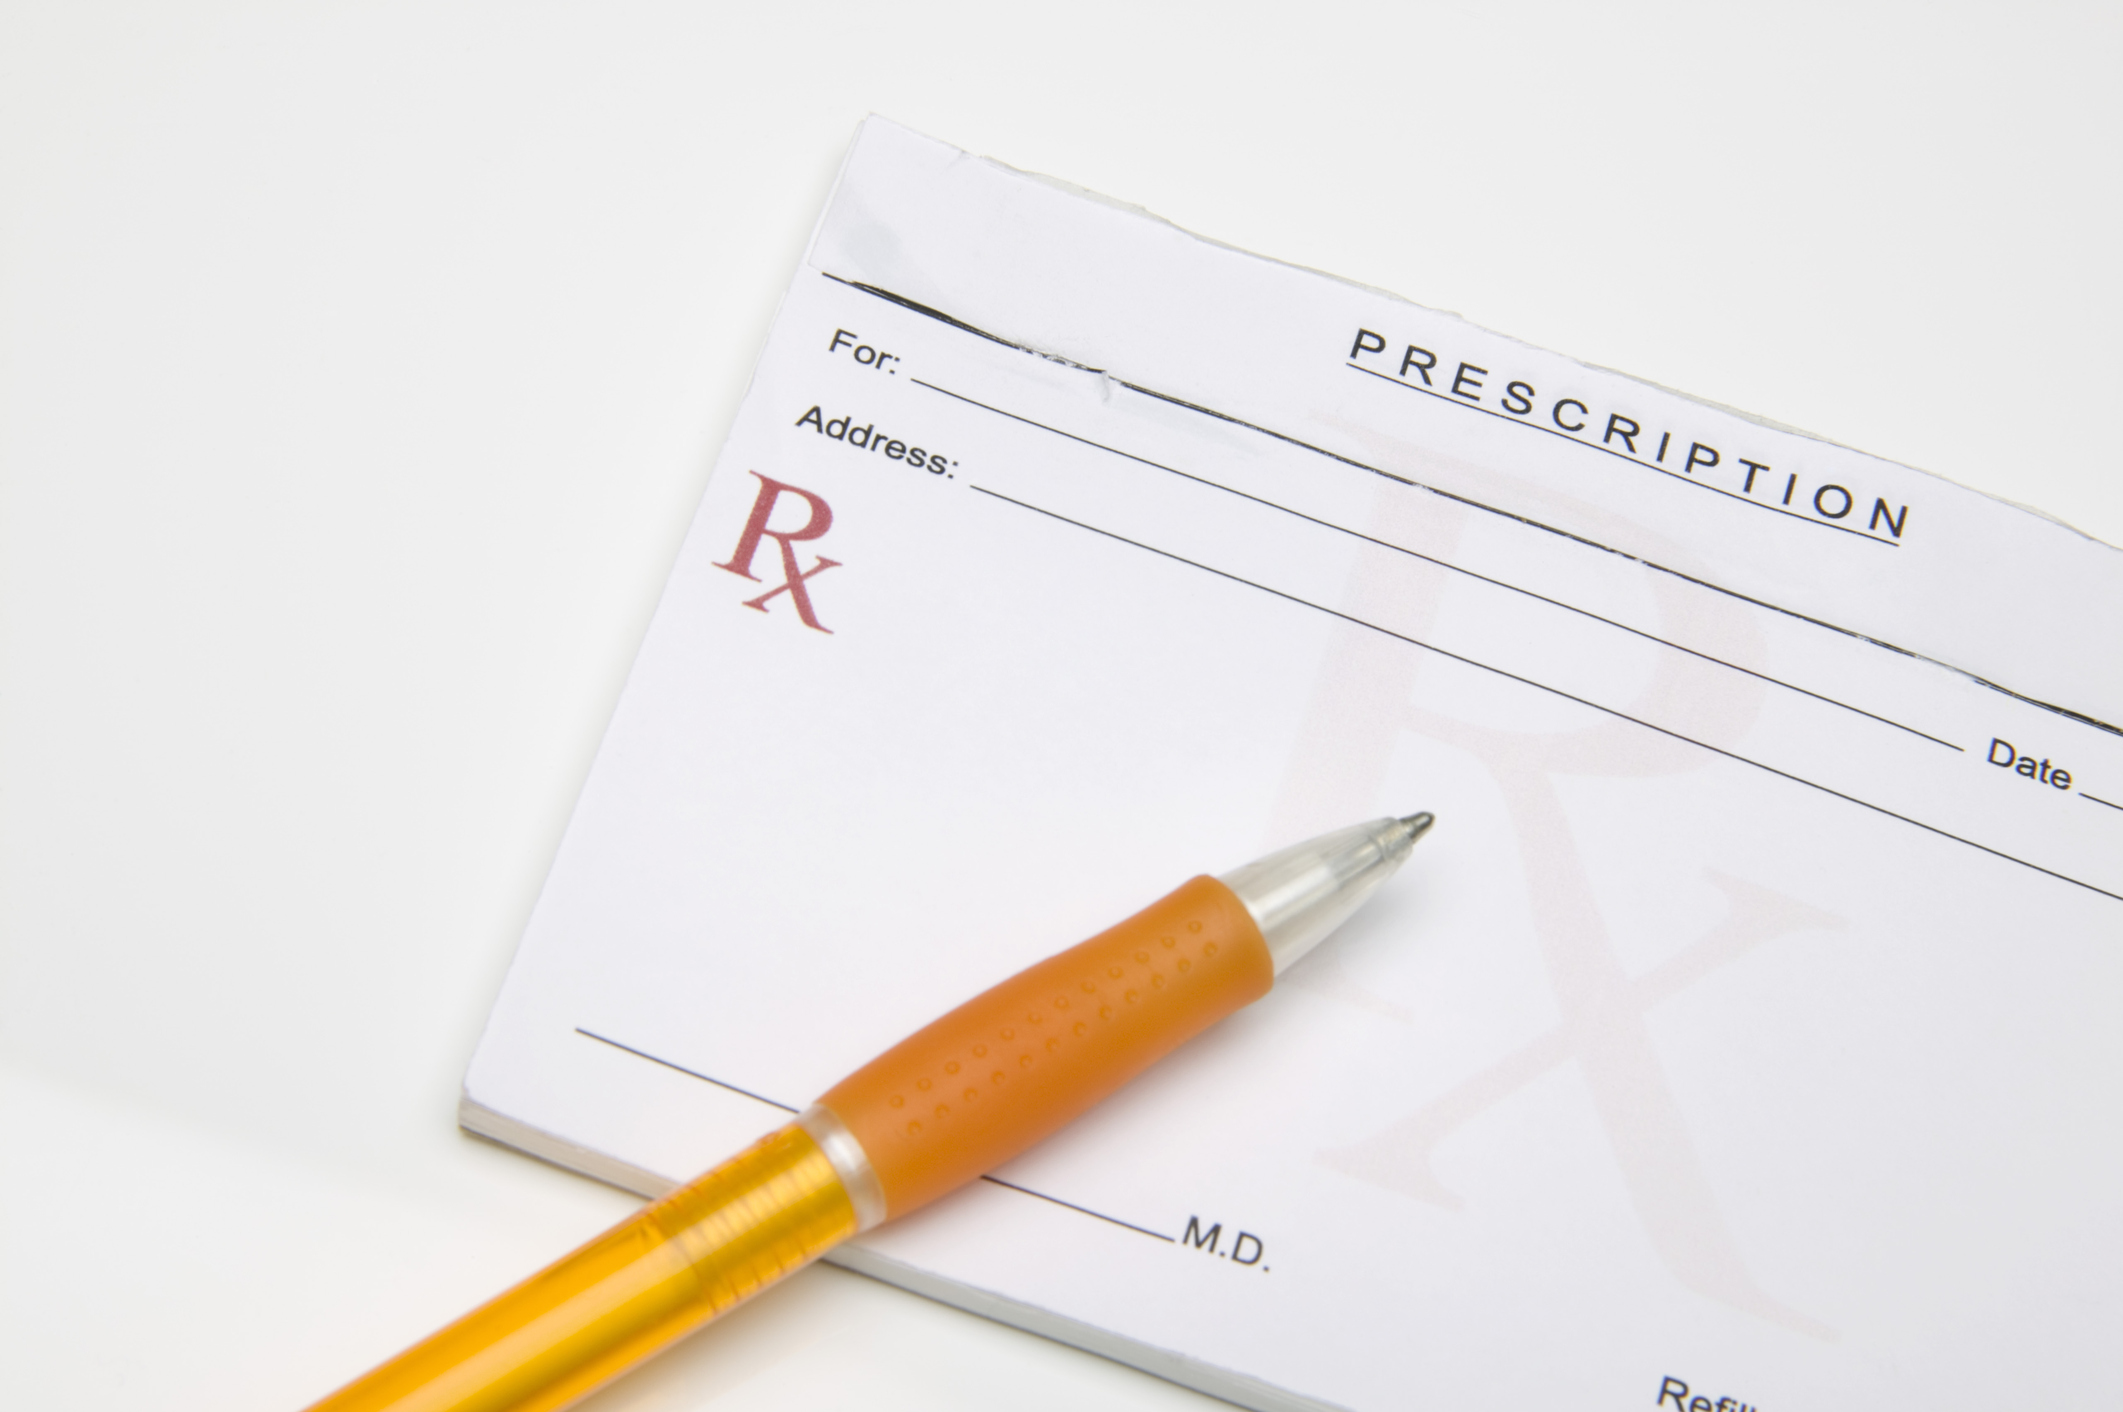 Concerta Generic Is Not Created Equal: ADHD Medication